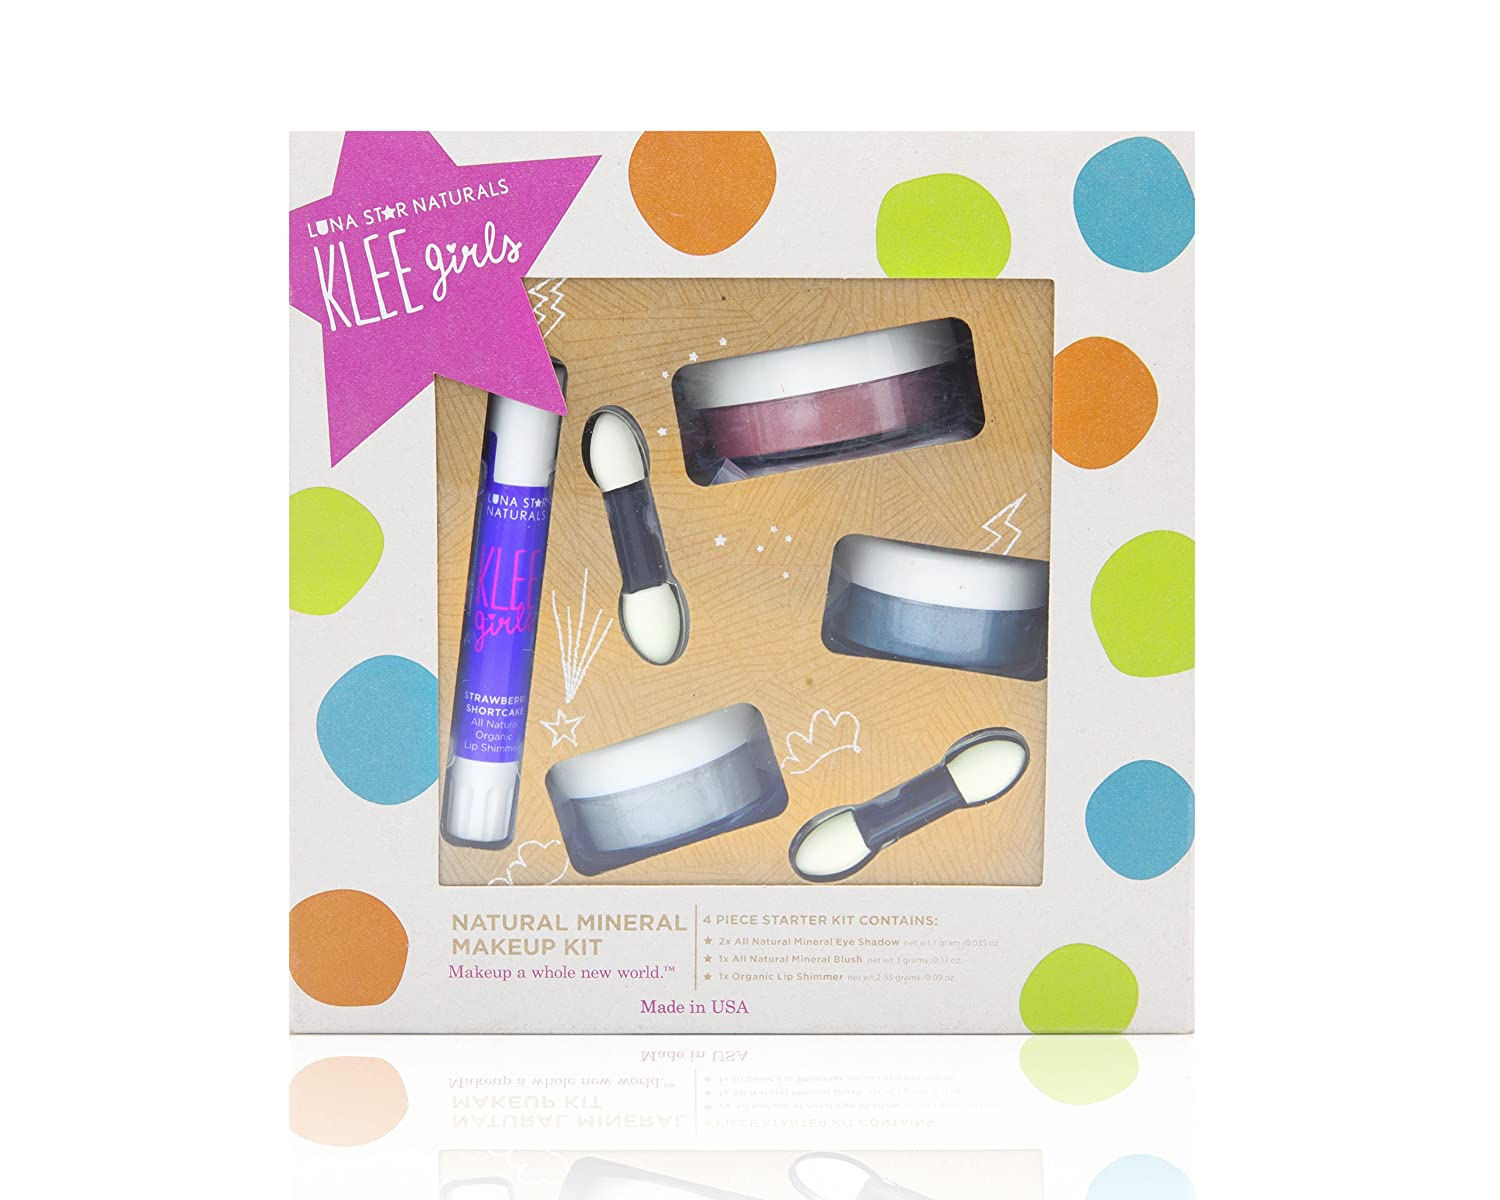 Luna Star Naturals Klee Girls 4 Piece Kit Shining Through Gift Set 1 Count LST0101